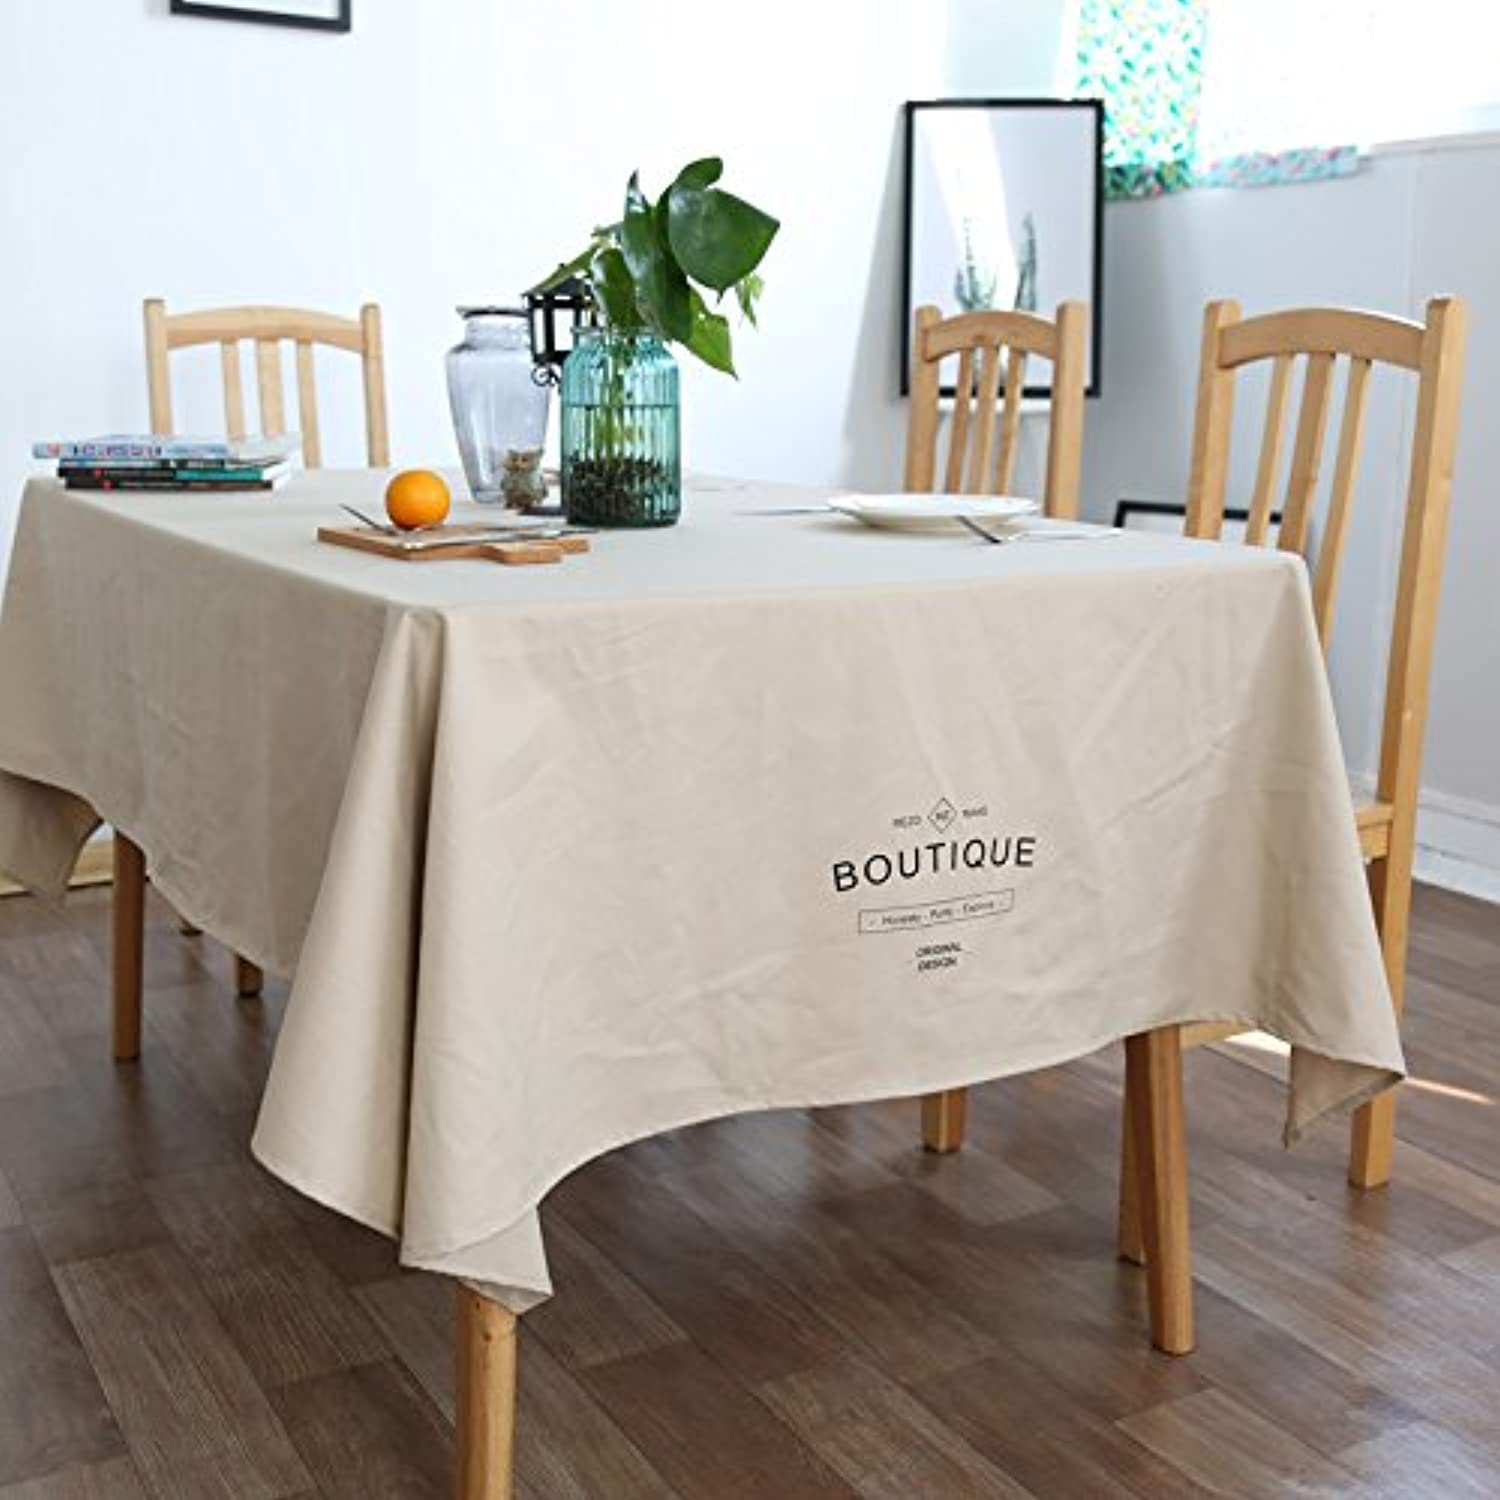 Creek Ywh Cotton Simple Modern Table Table Cloth Solid color English Nordic Fabric Tablecloth Rectangular American Retro Dining Tablecloth, Khaki, 140180cm